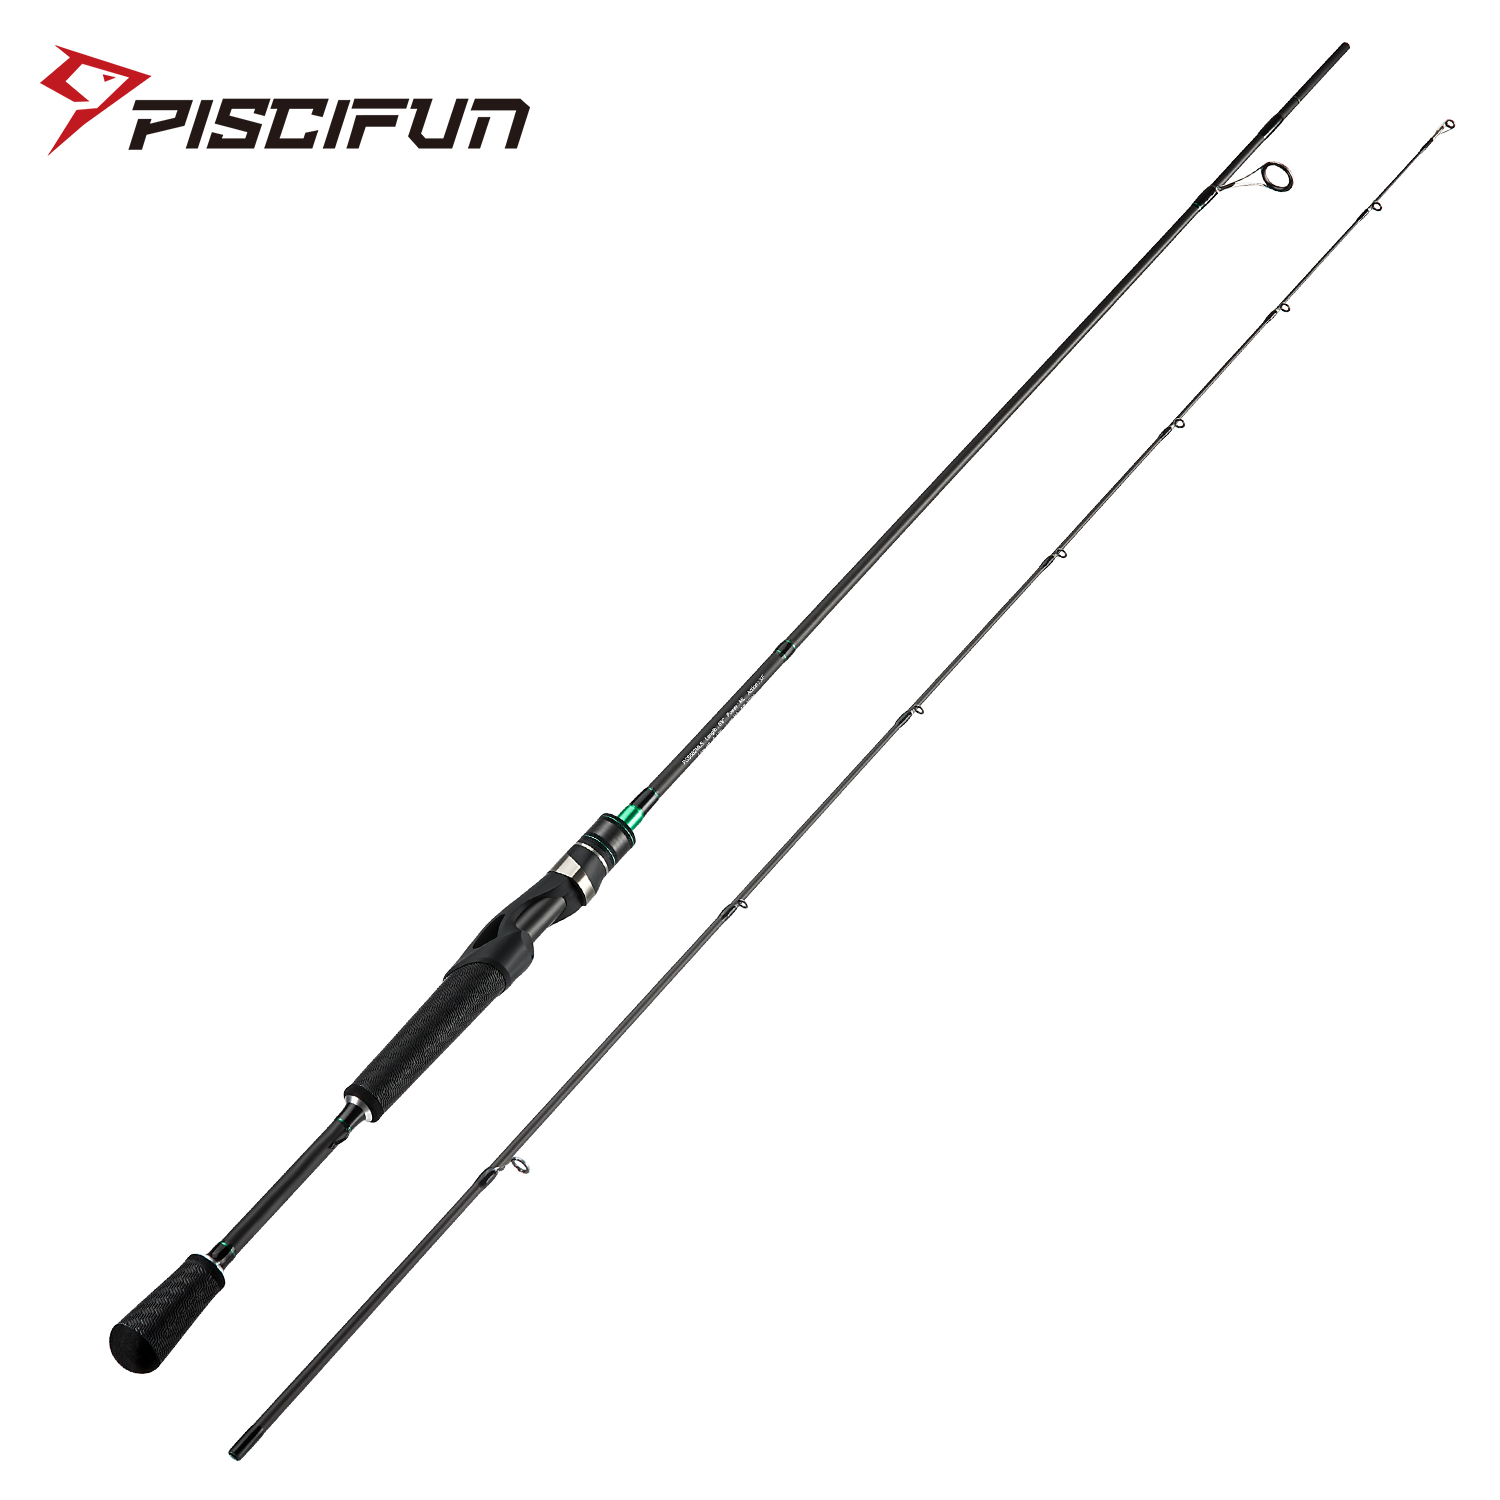 Piscifun Serpent Two Piece Spinning Rod IM7 Toray Carbon Fiber Fuji Guides Tournament Level Performance 2M